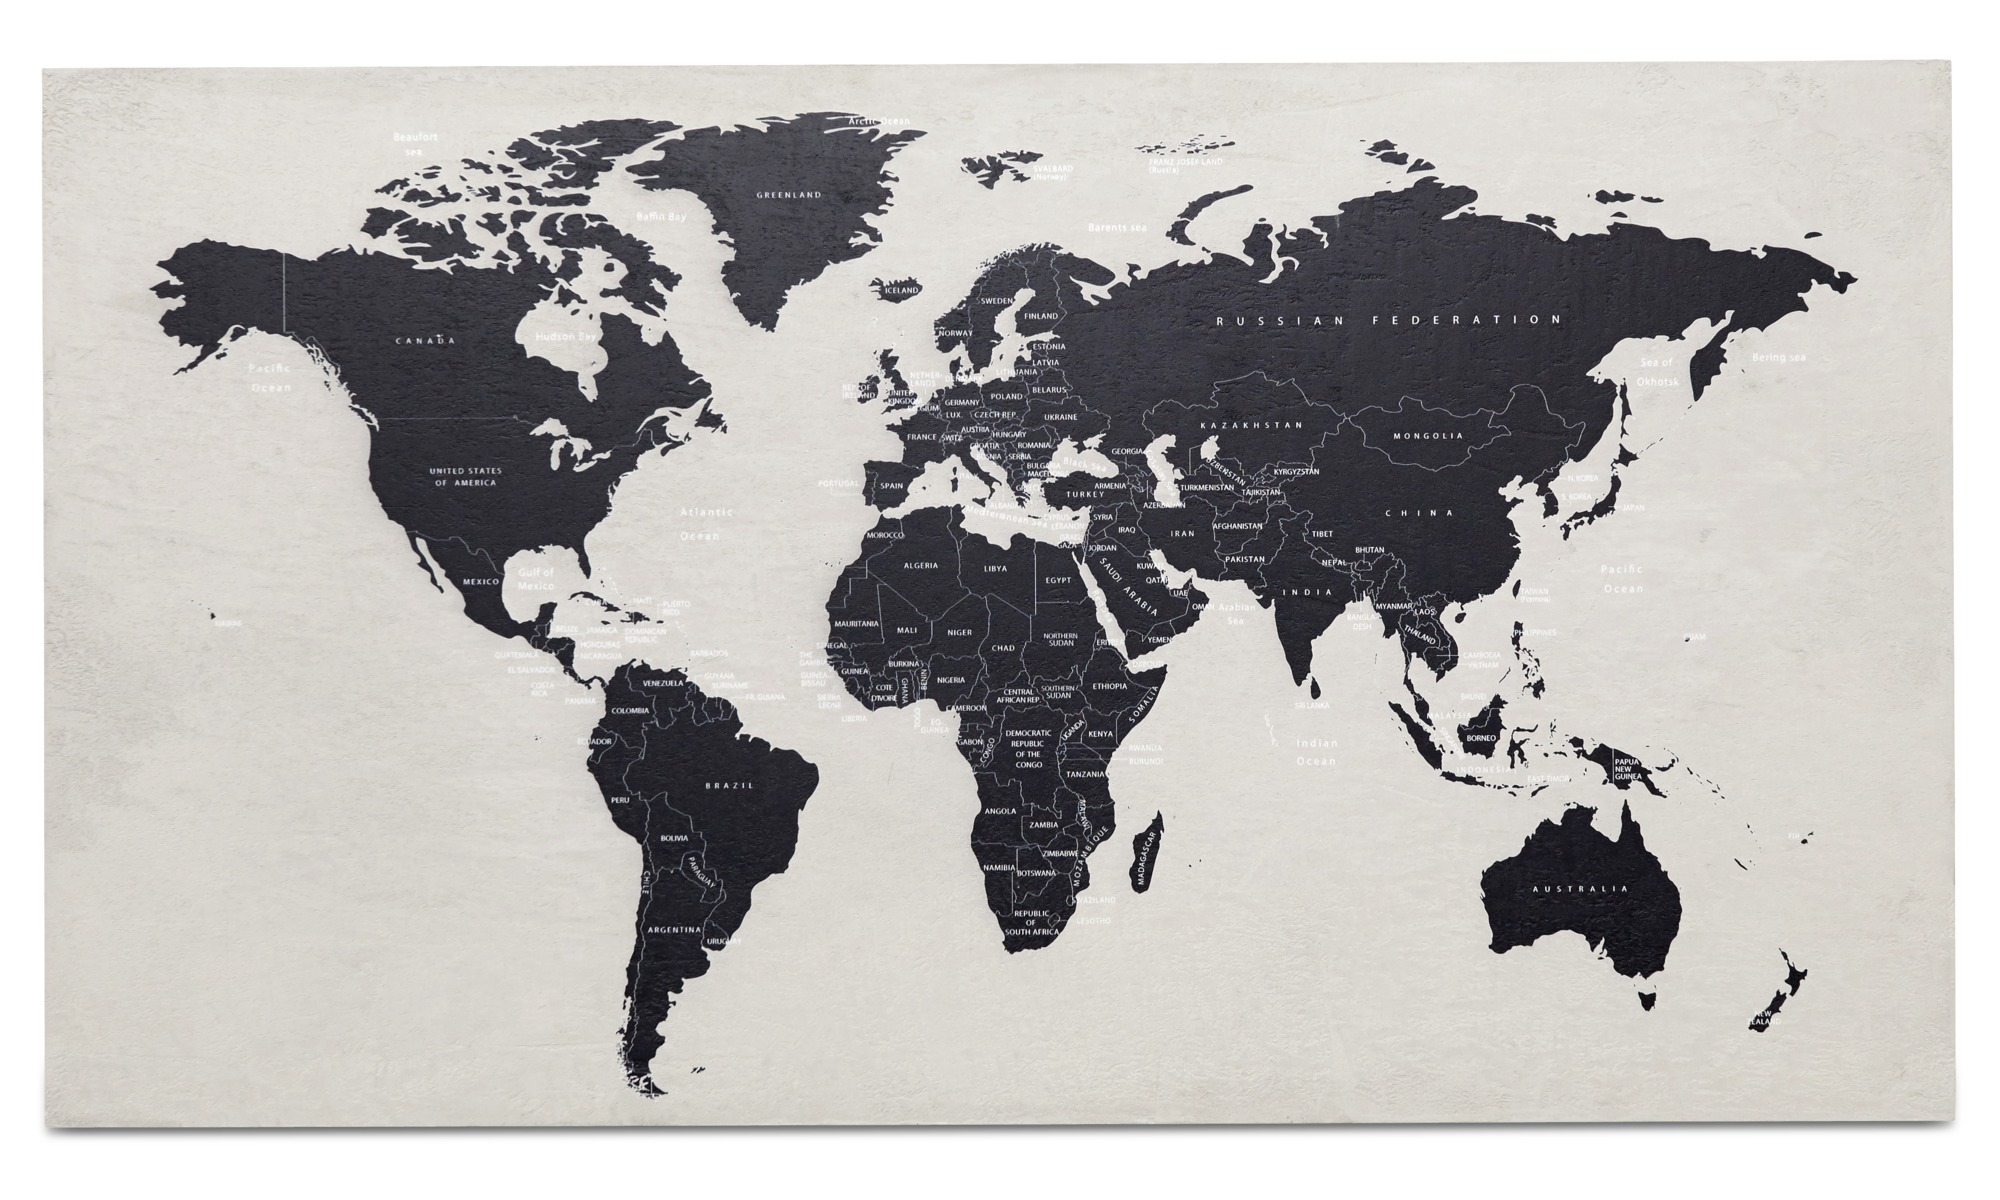 Gallery world map concrete art boconcept gallery world map concrete art grey concrete gumiabroncs Choice Image